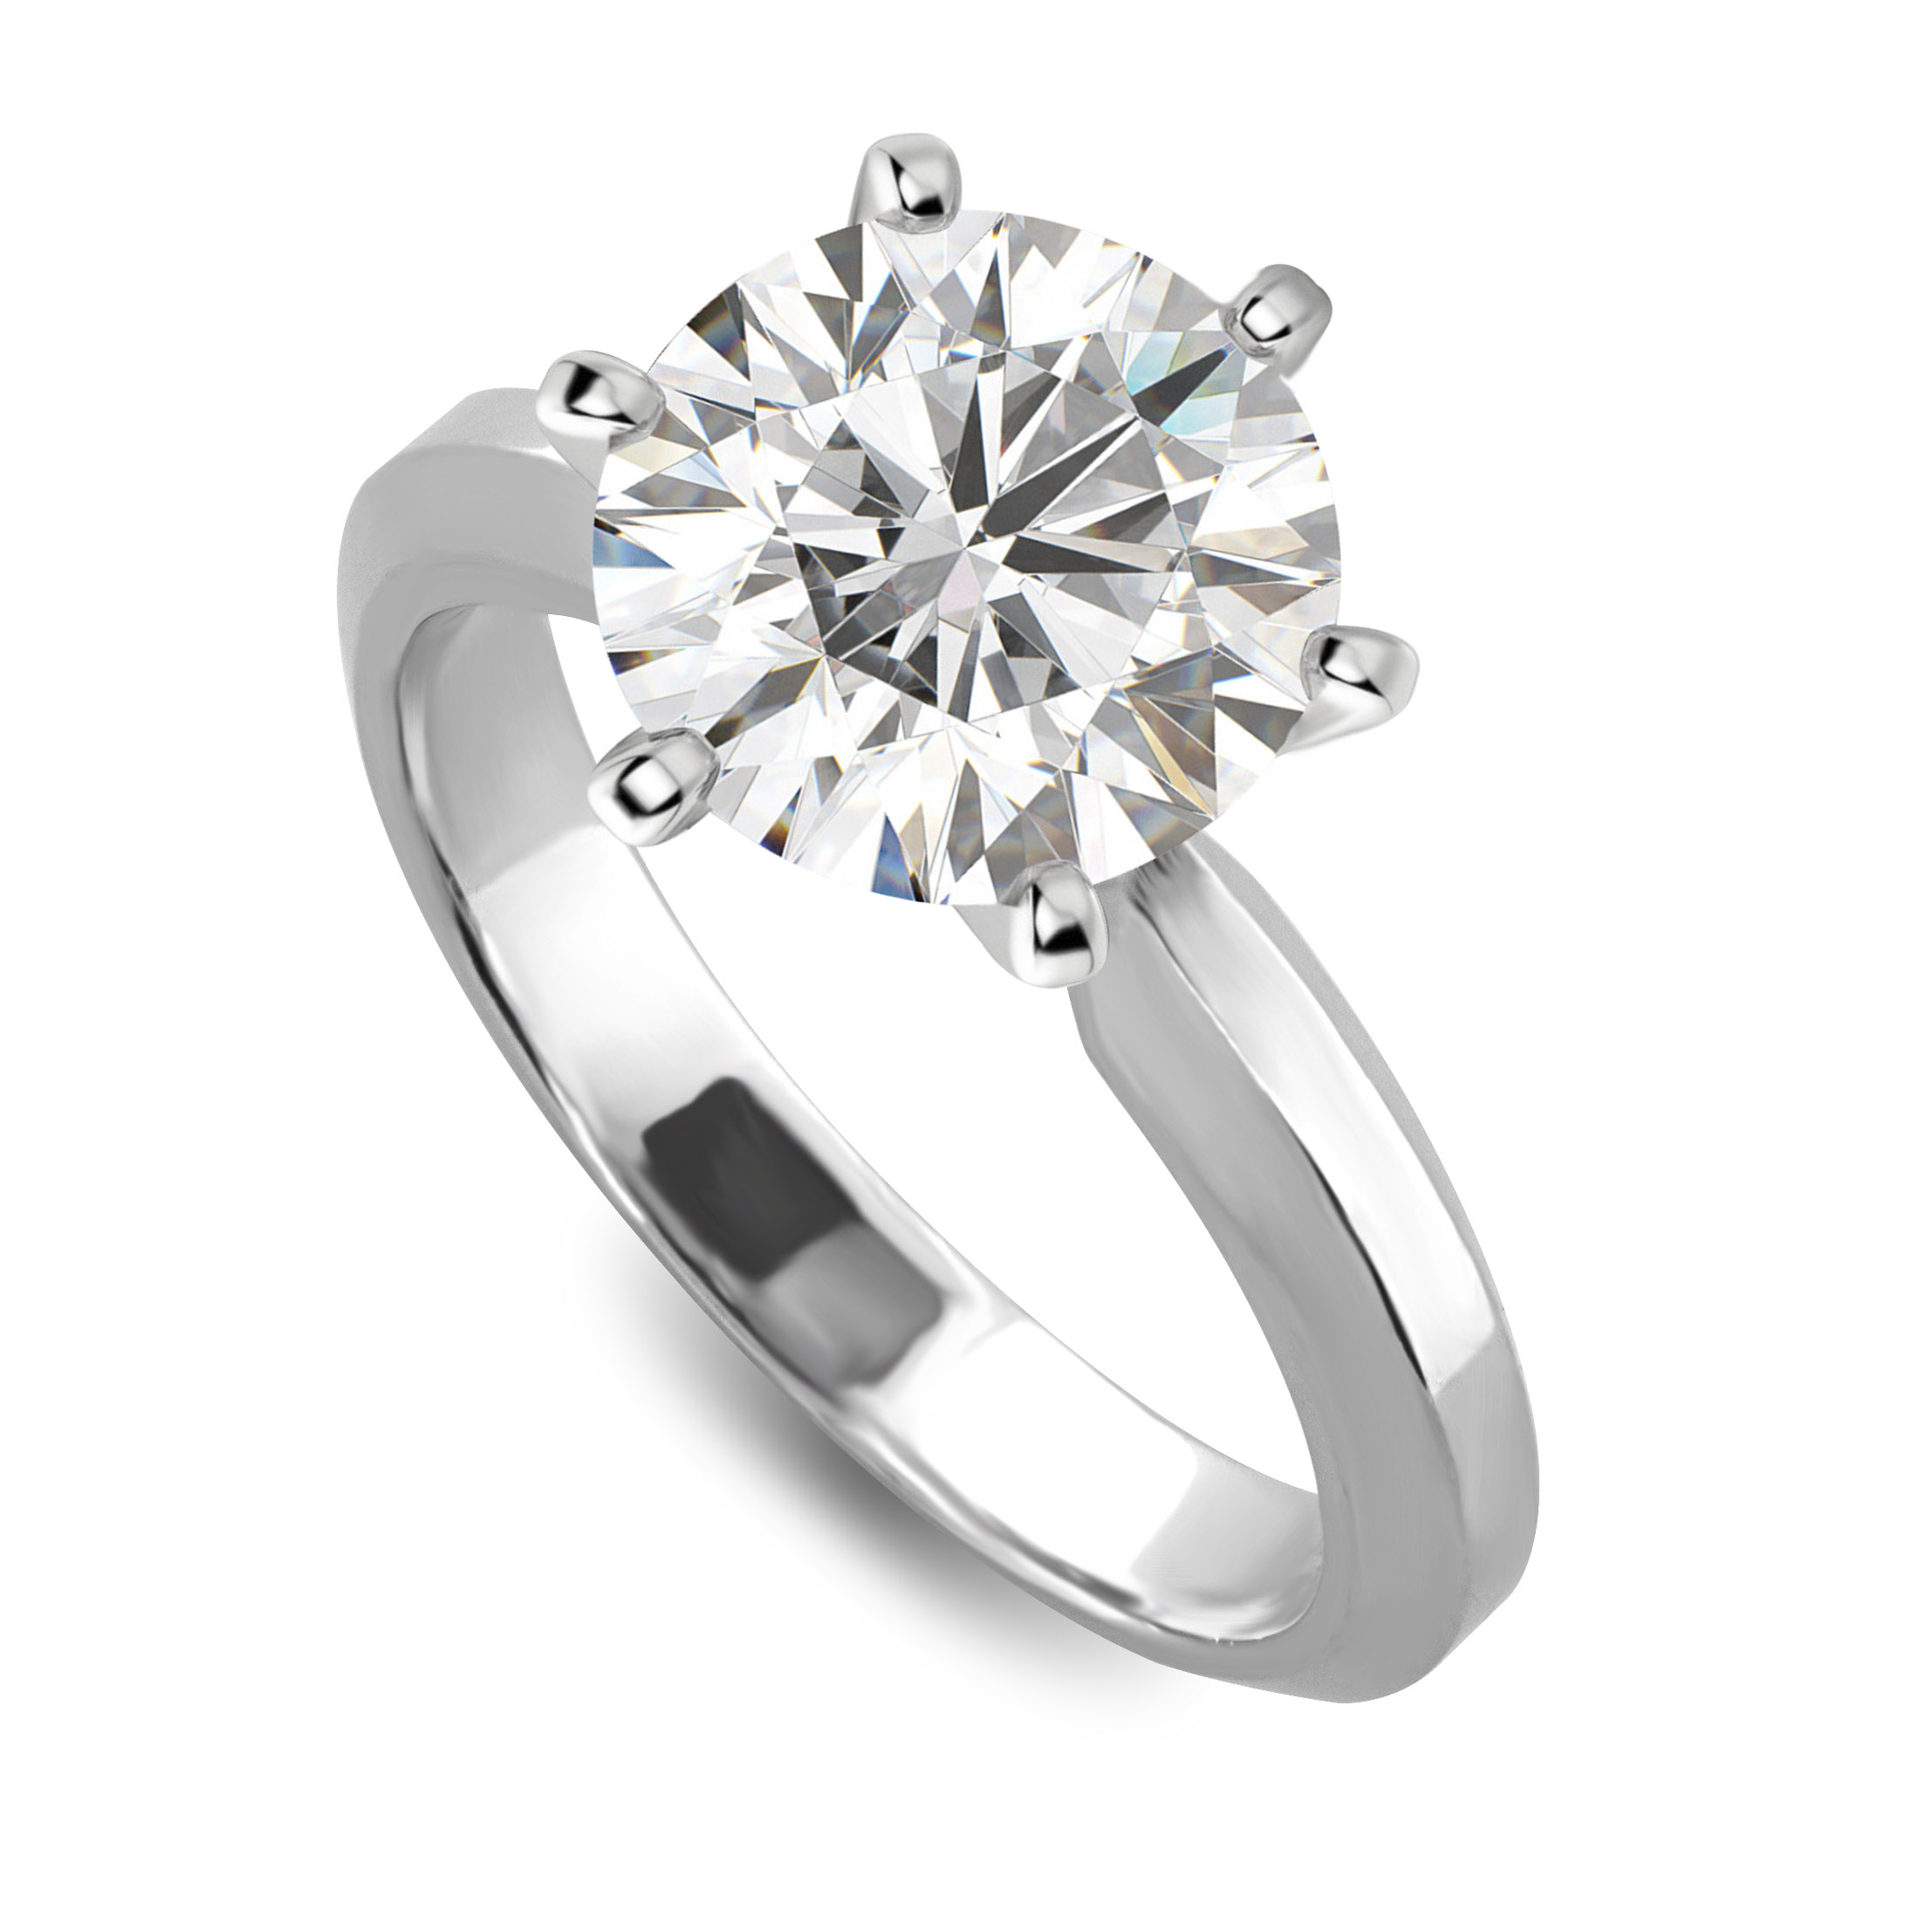 6 prong round diamond solitaire engagement ring gold or